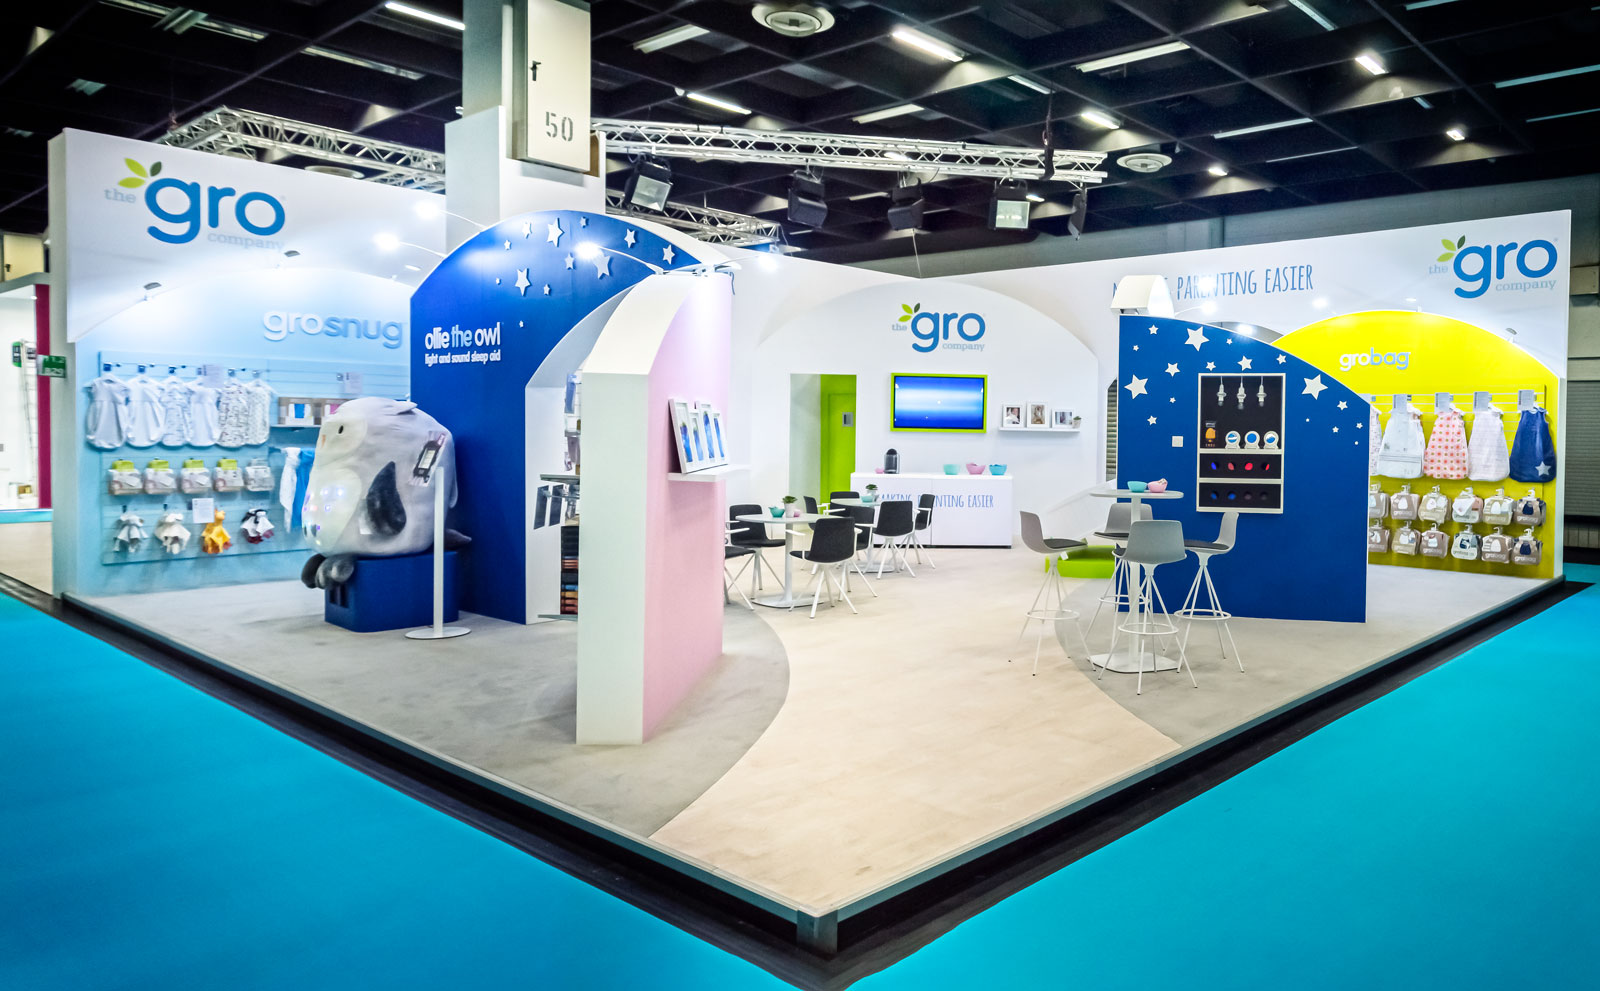 The Gro Company Exhibit Booth Overview